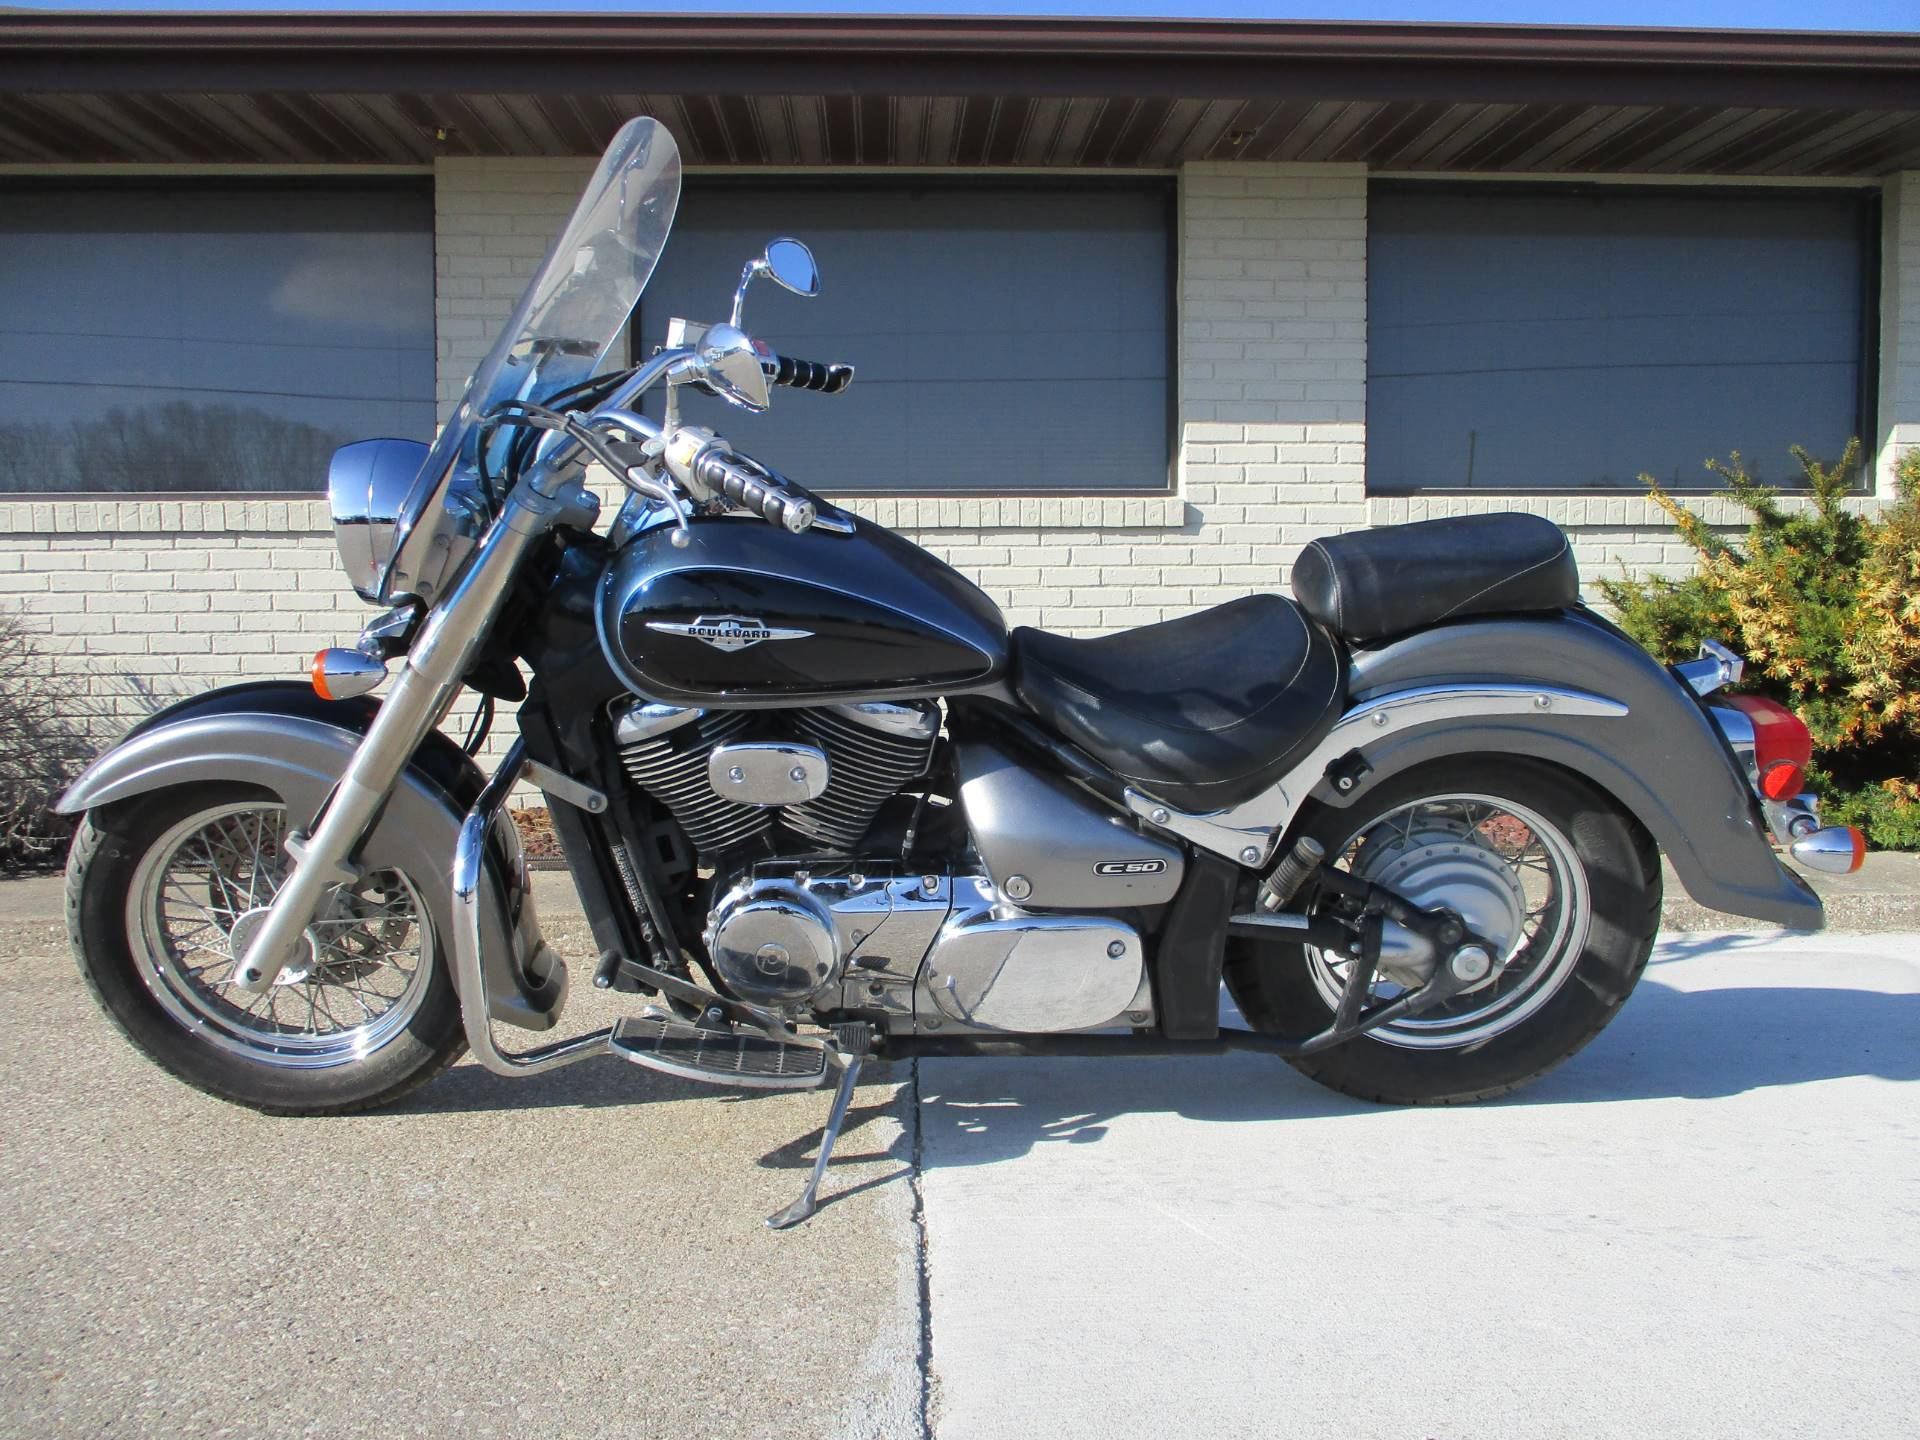 2005 Suzuki Boulevard C50 in Winterset, Iowa - Photo 2